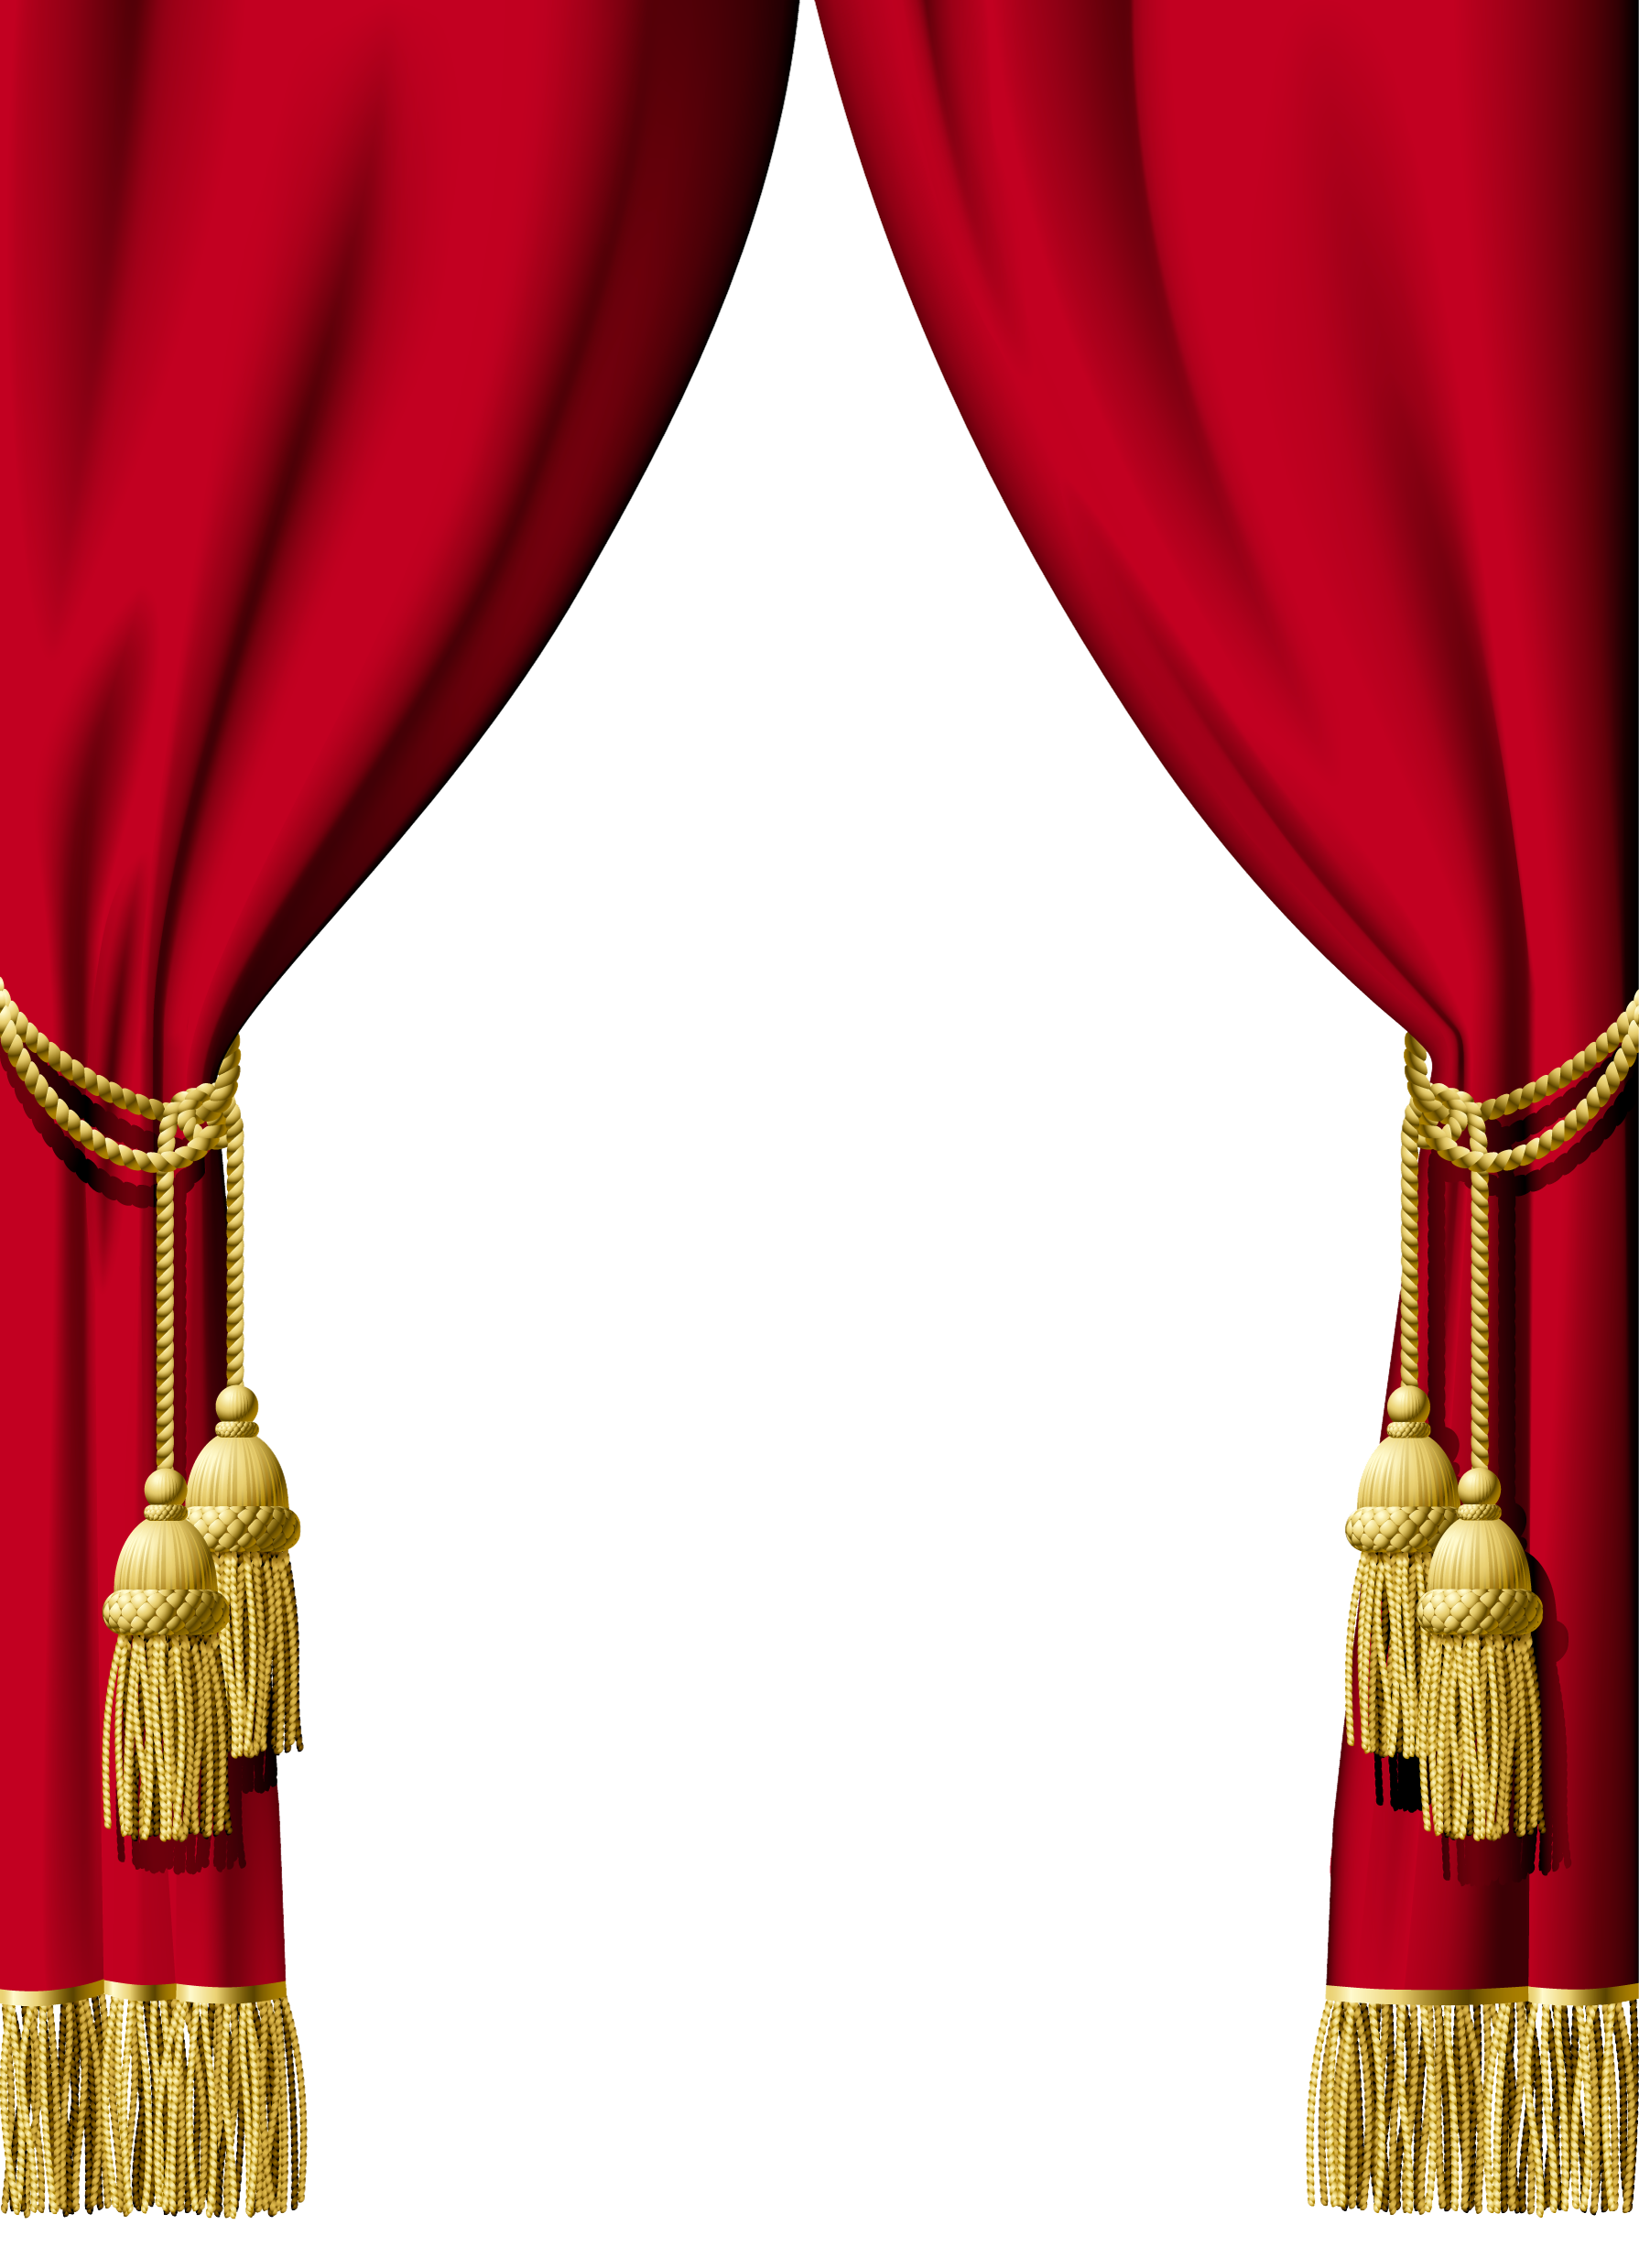 Curtain hd png transparent. Curtains clipart homestuck